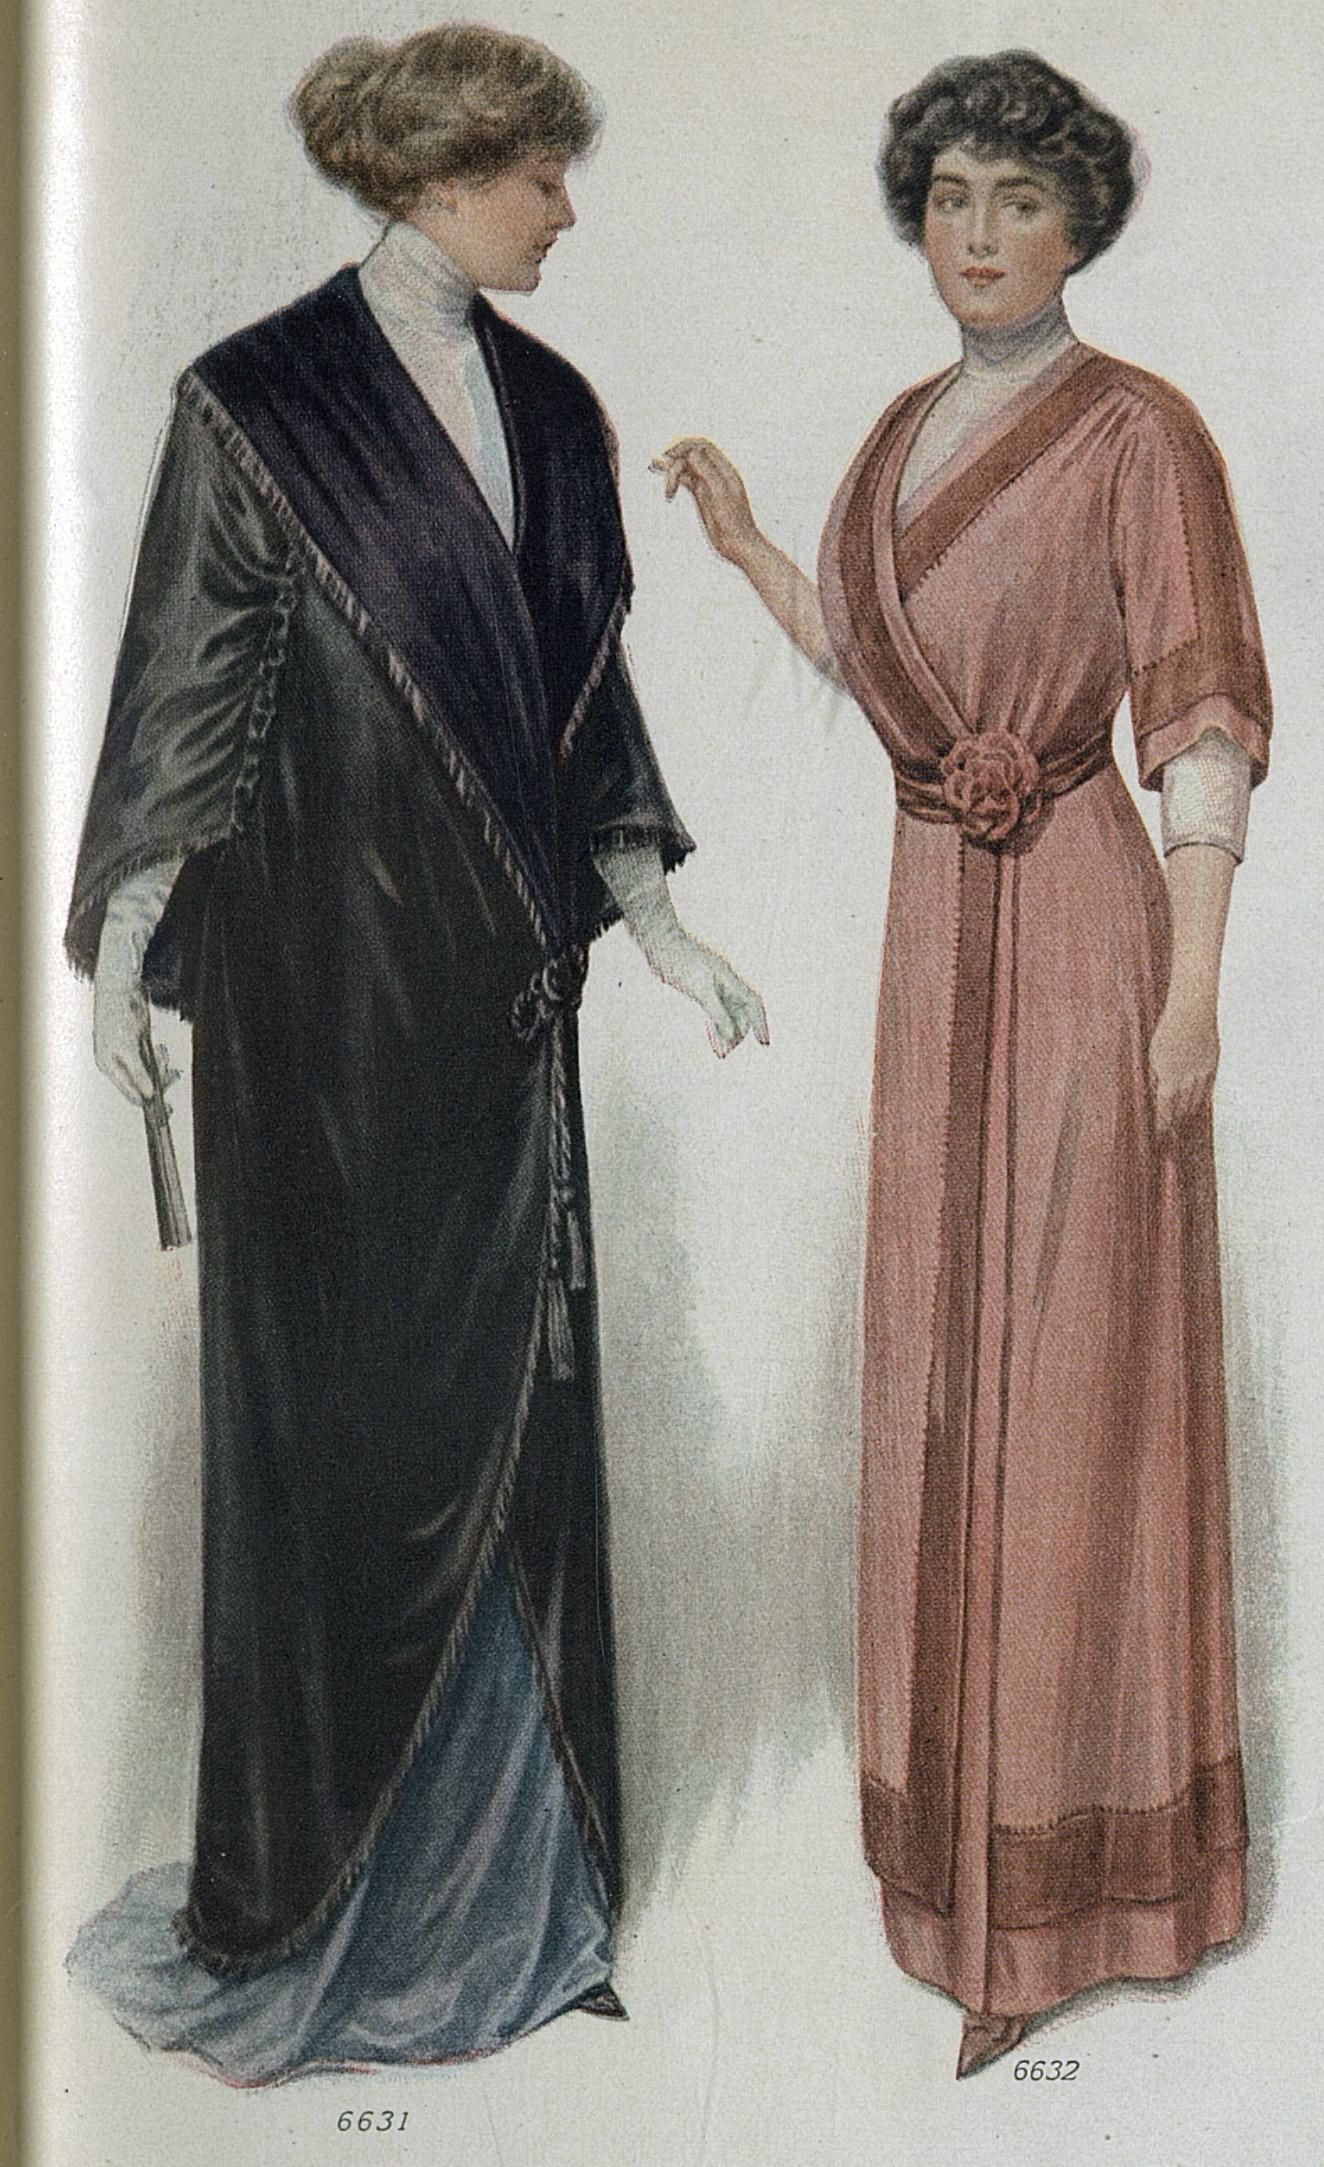 Fashion 1910 to 1920 - Hundred Year Old Fashions For Stout Women Source Ladies Home Journal February